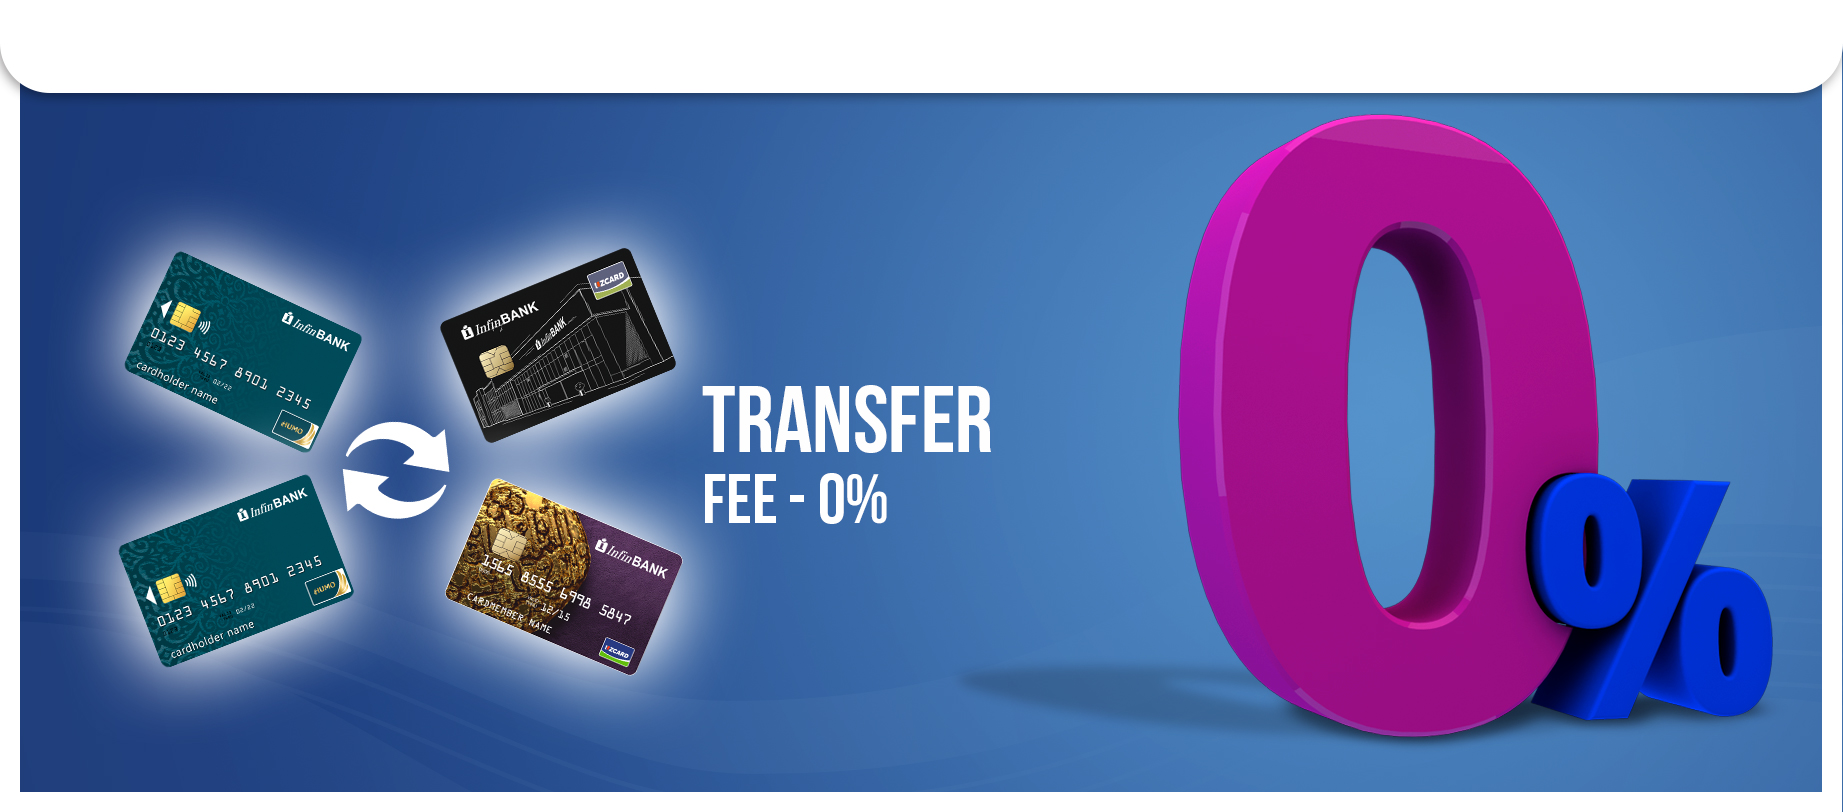 Updated terms for transferring funds between cards